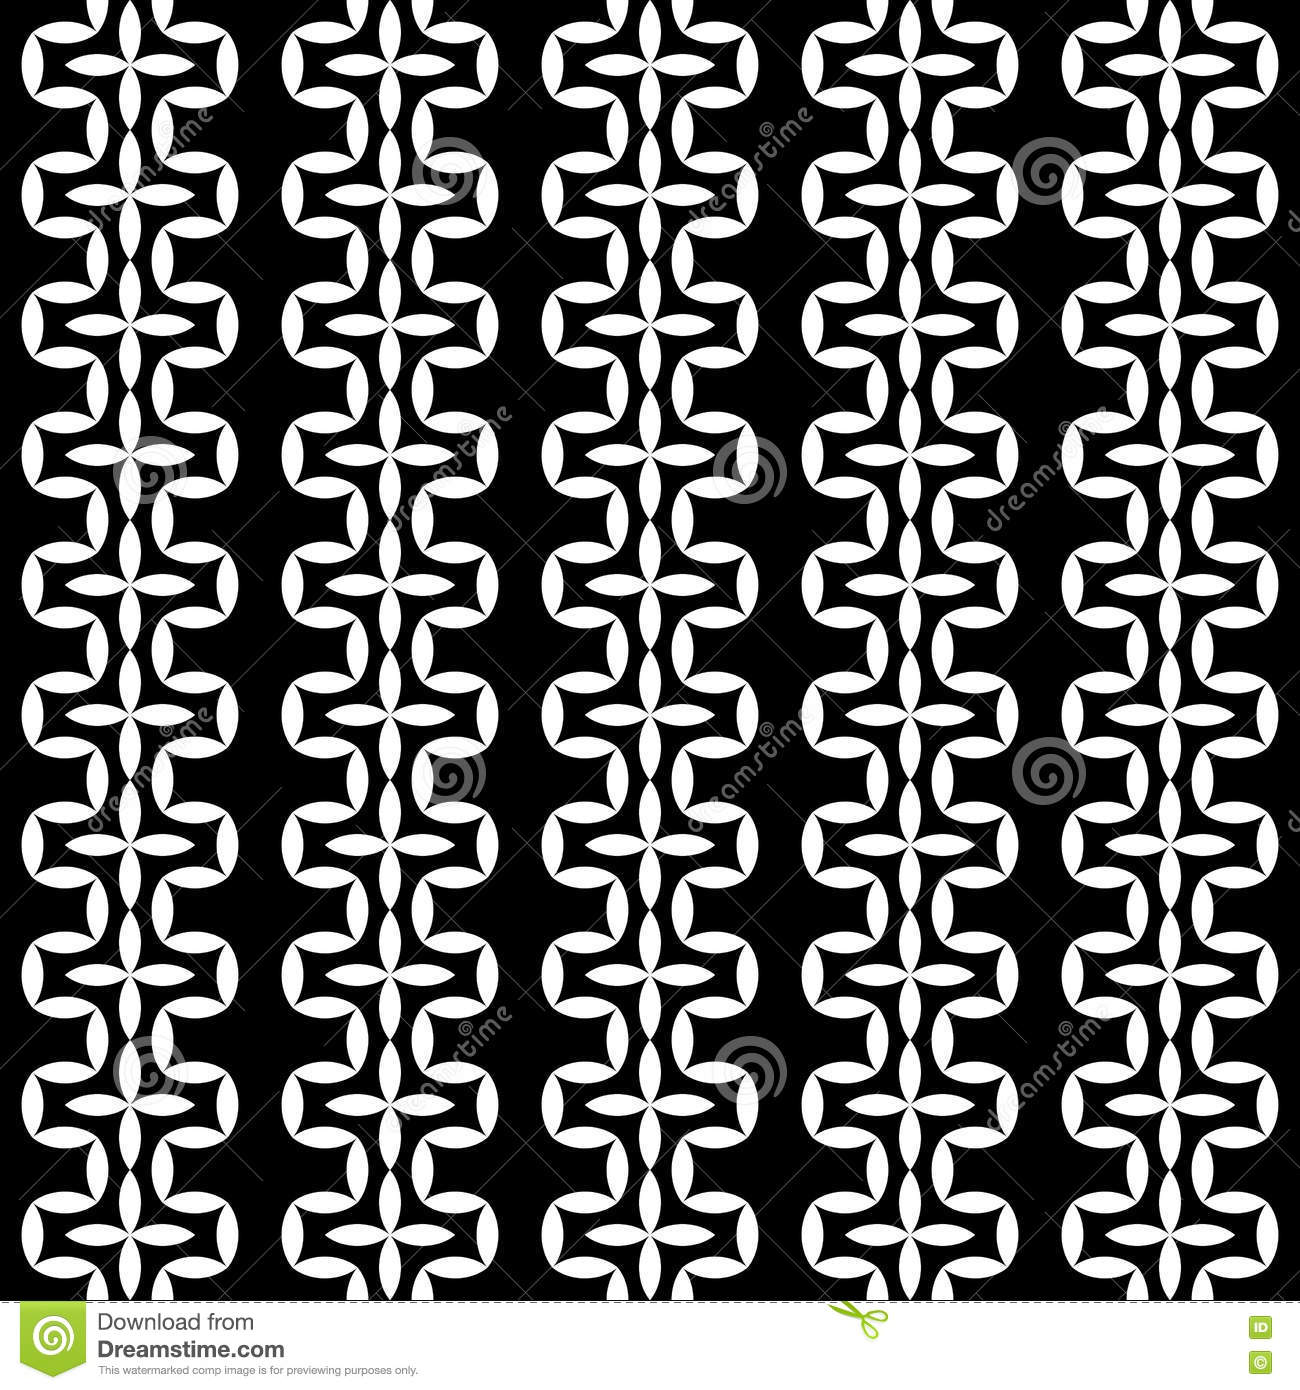 Black bed sheets pattern - Vector Modern Abstract Geometry Floral Pattern